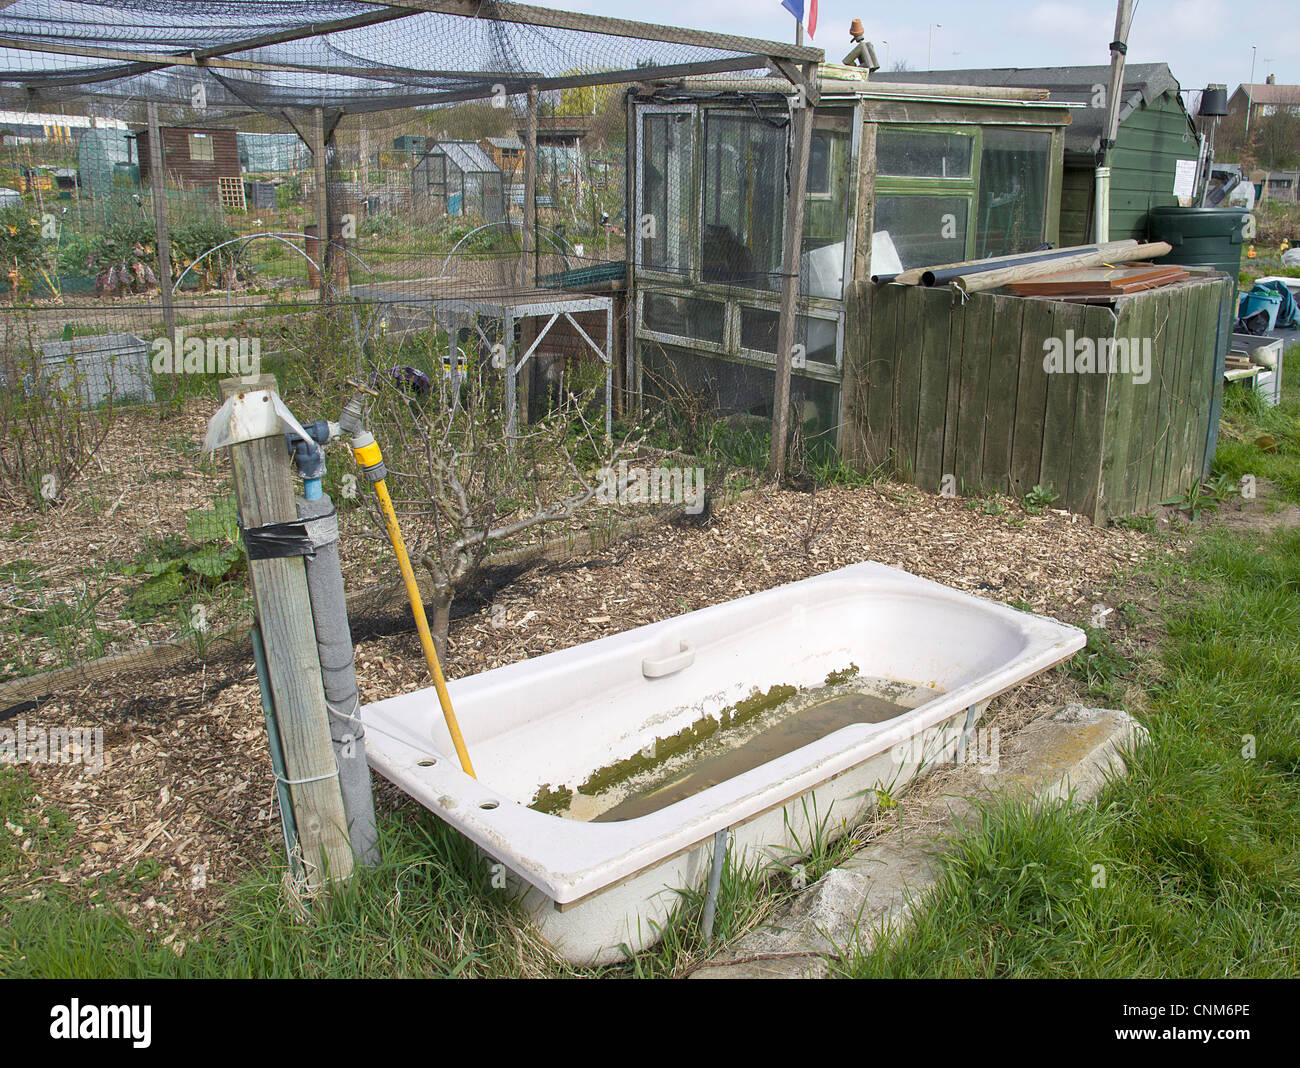 Water conservation during drought water shortage period. Old baths used for water storage at allotment. - Stock Image